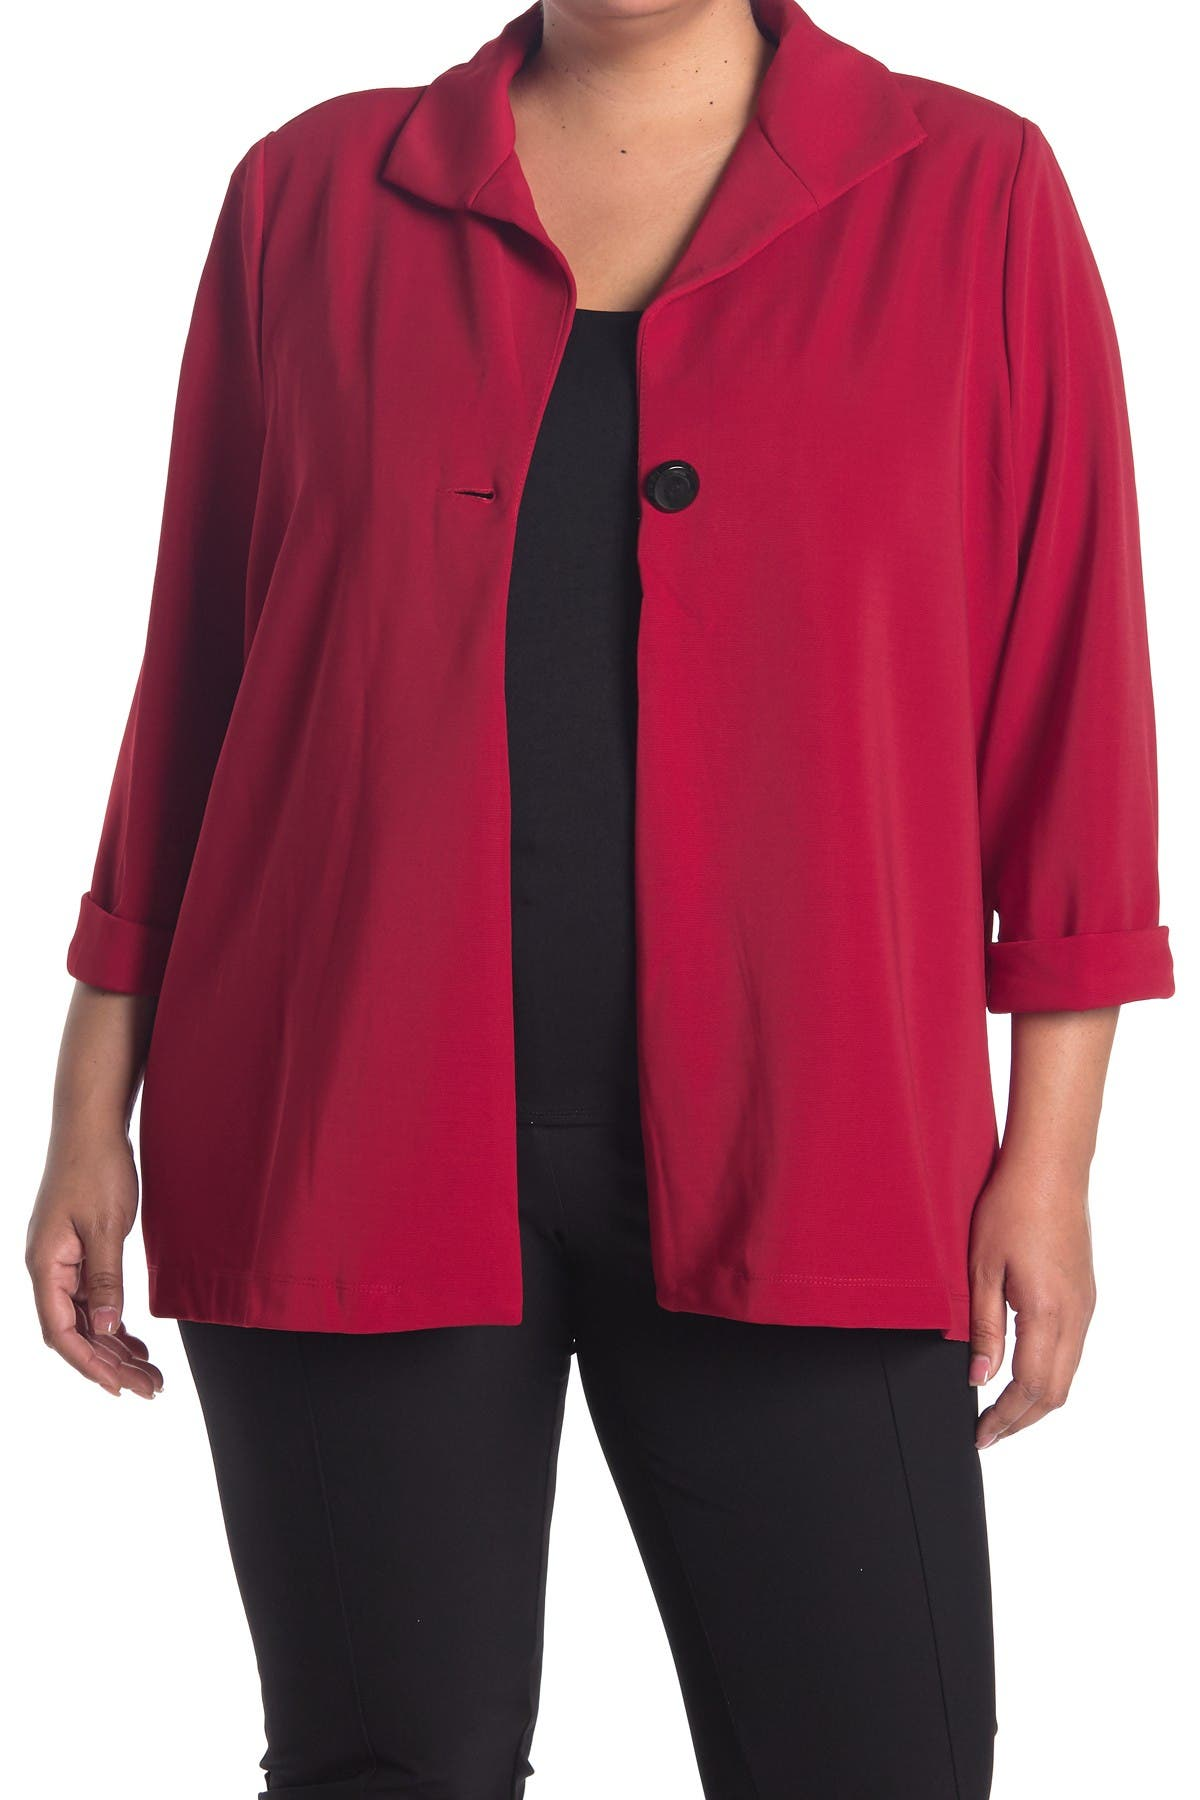 Image of GRACE ELEMENTS 3/4 Cuffed Sleeve Button Jacket